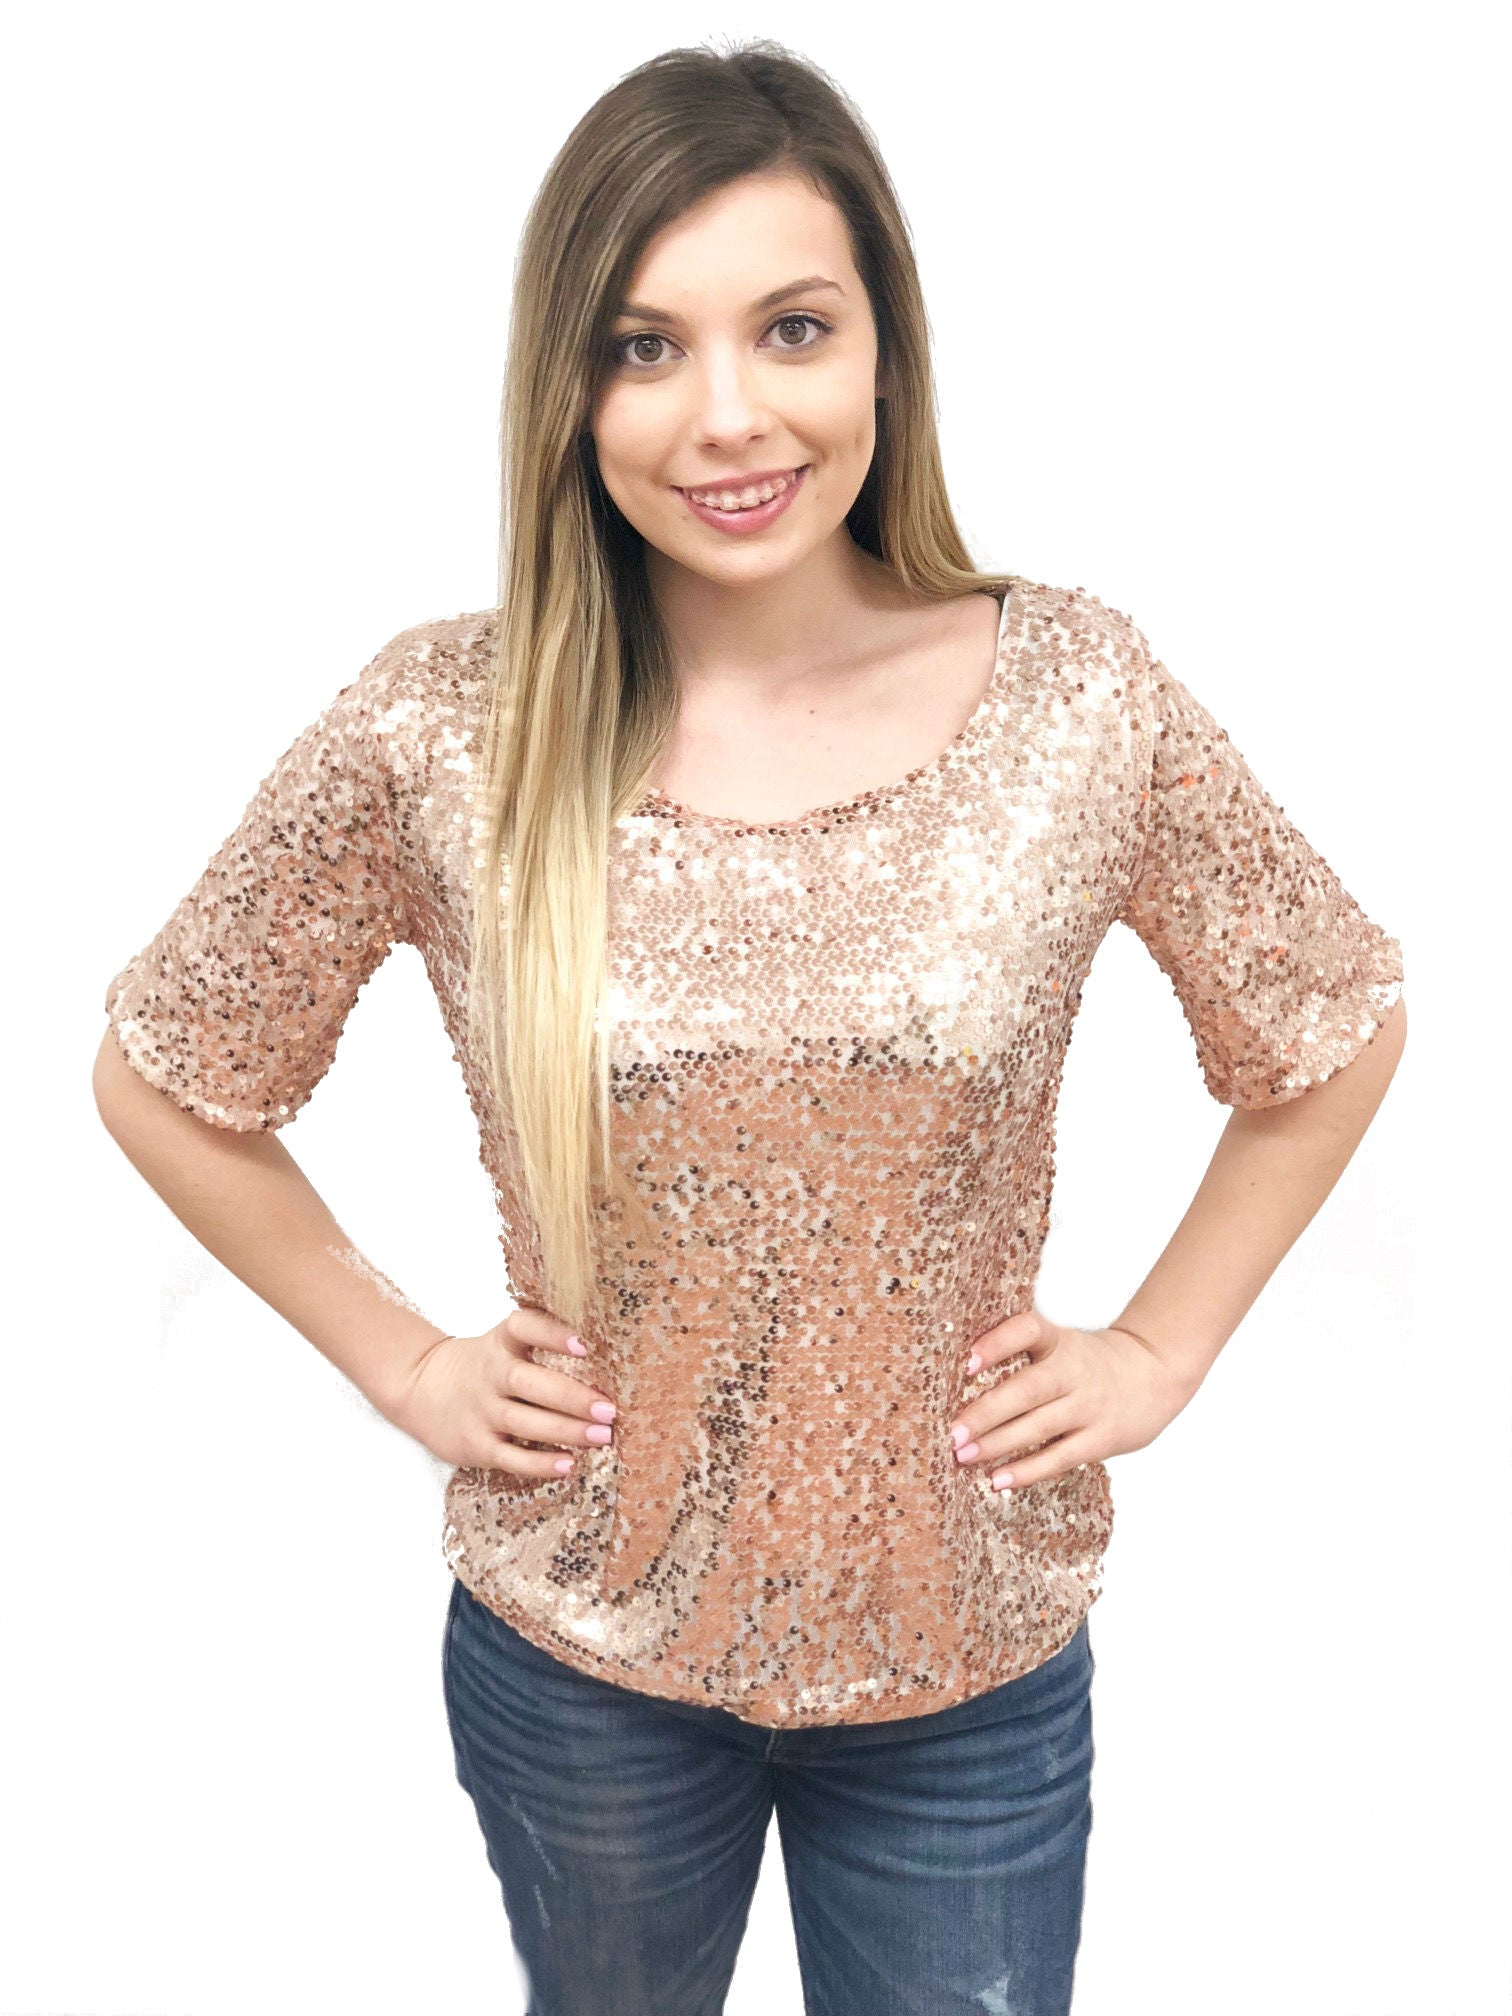 women short sleeve pull on top solid sequin silver gold black rose gold sparkly shinny cheap